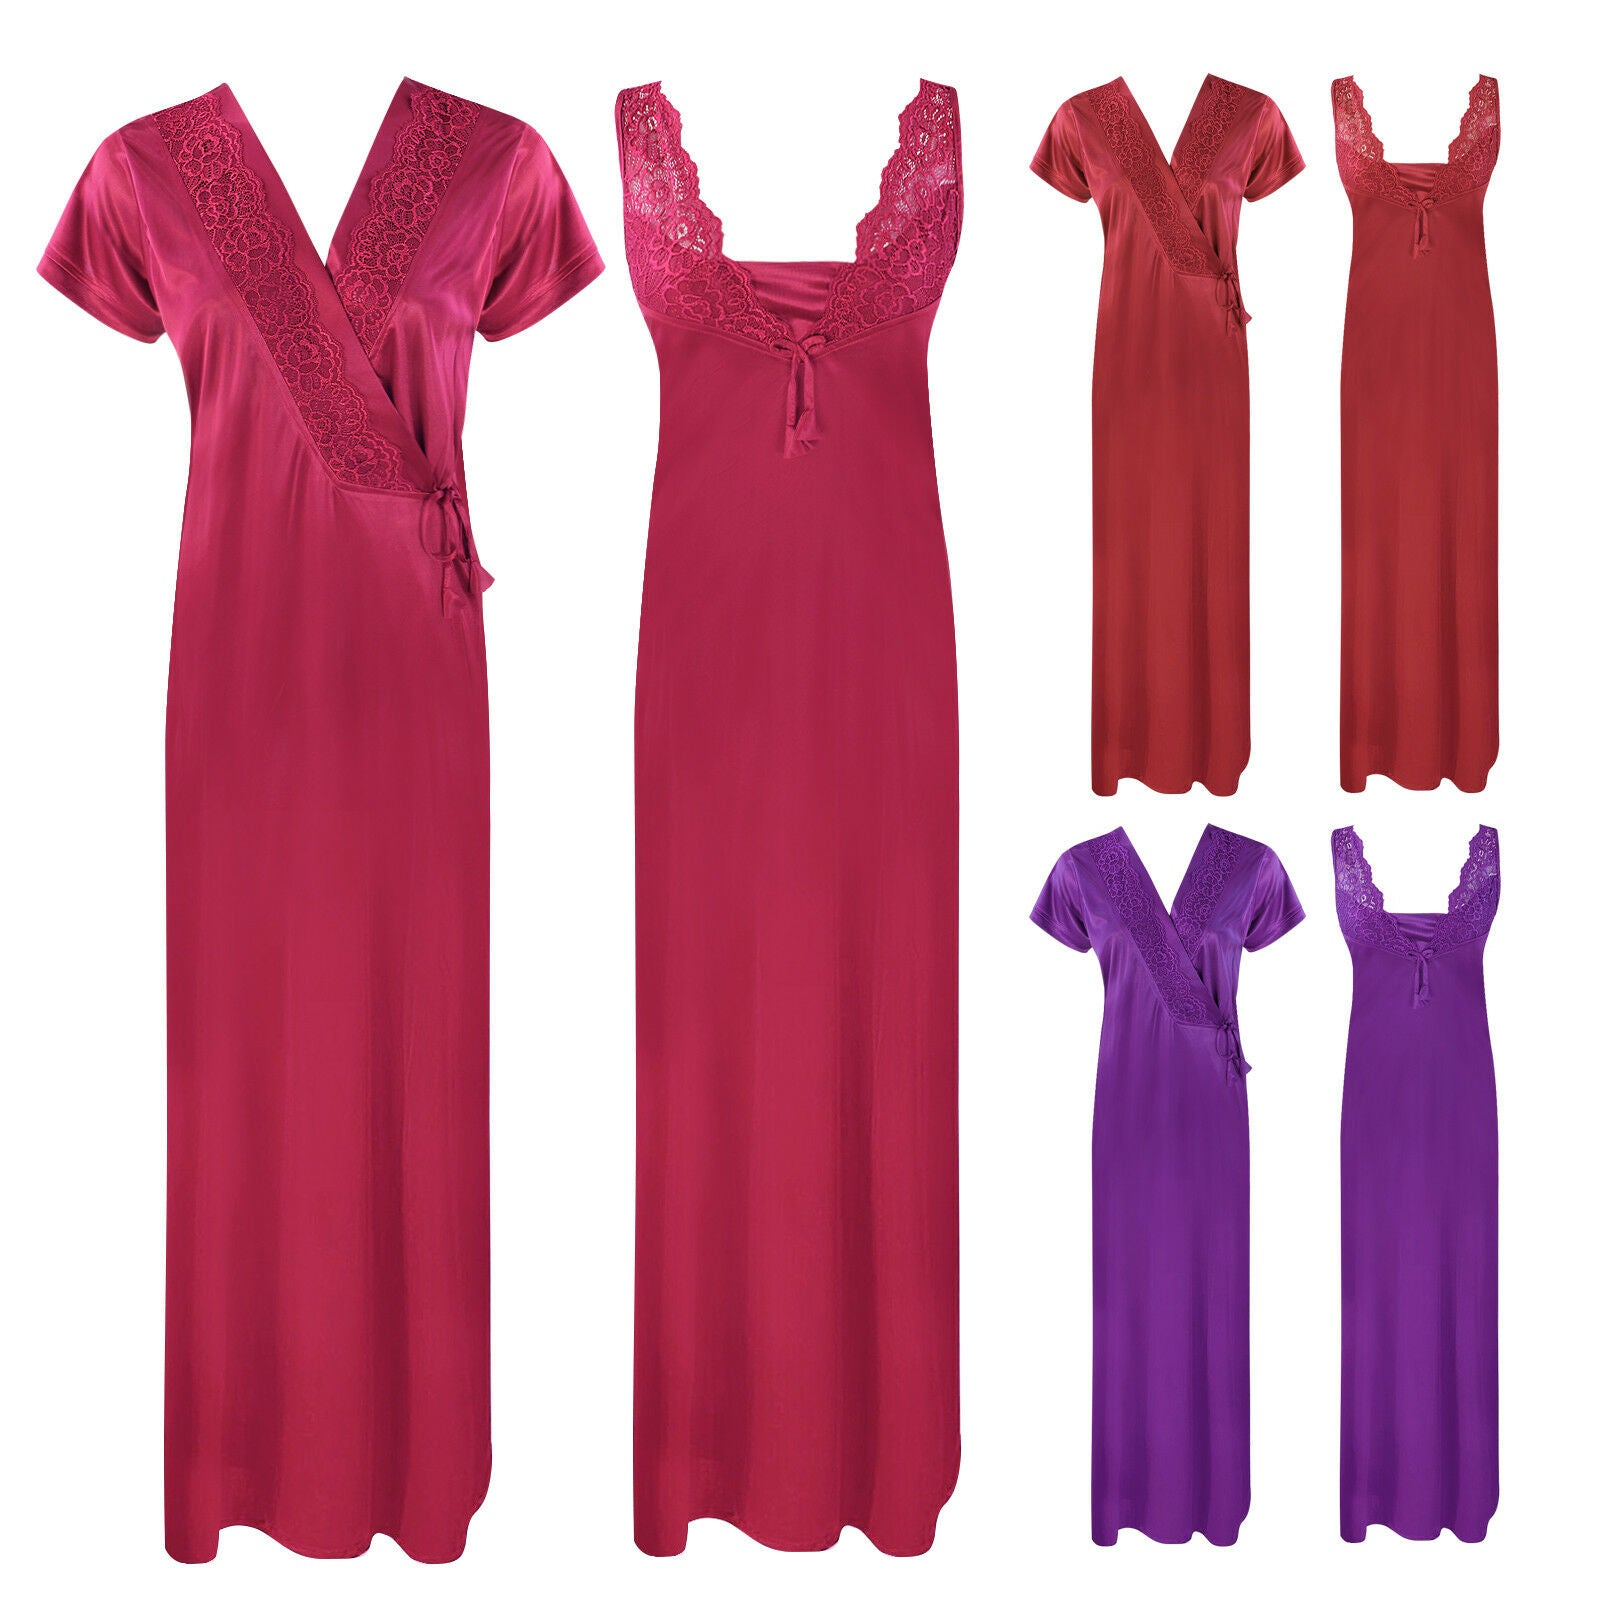 Color: Deep Red, Ruby, Wine 2 Piece Satin Long Nighty With Robe Size: One Size: Regular (8-14)